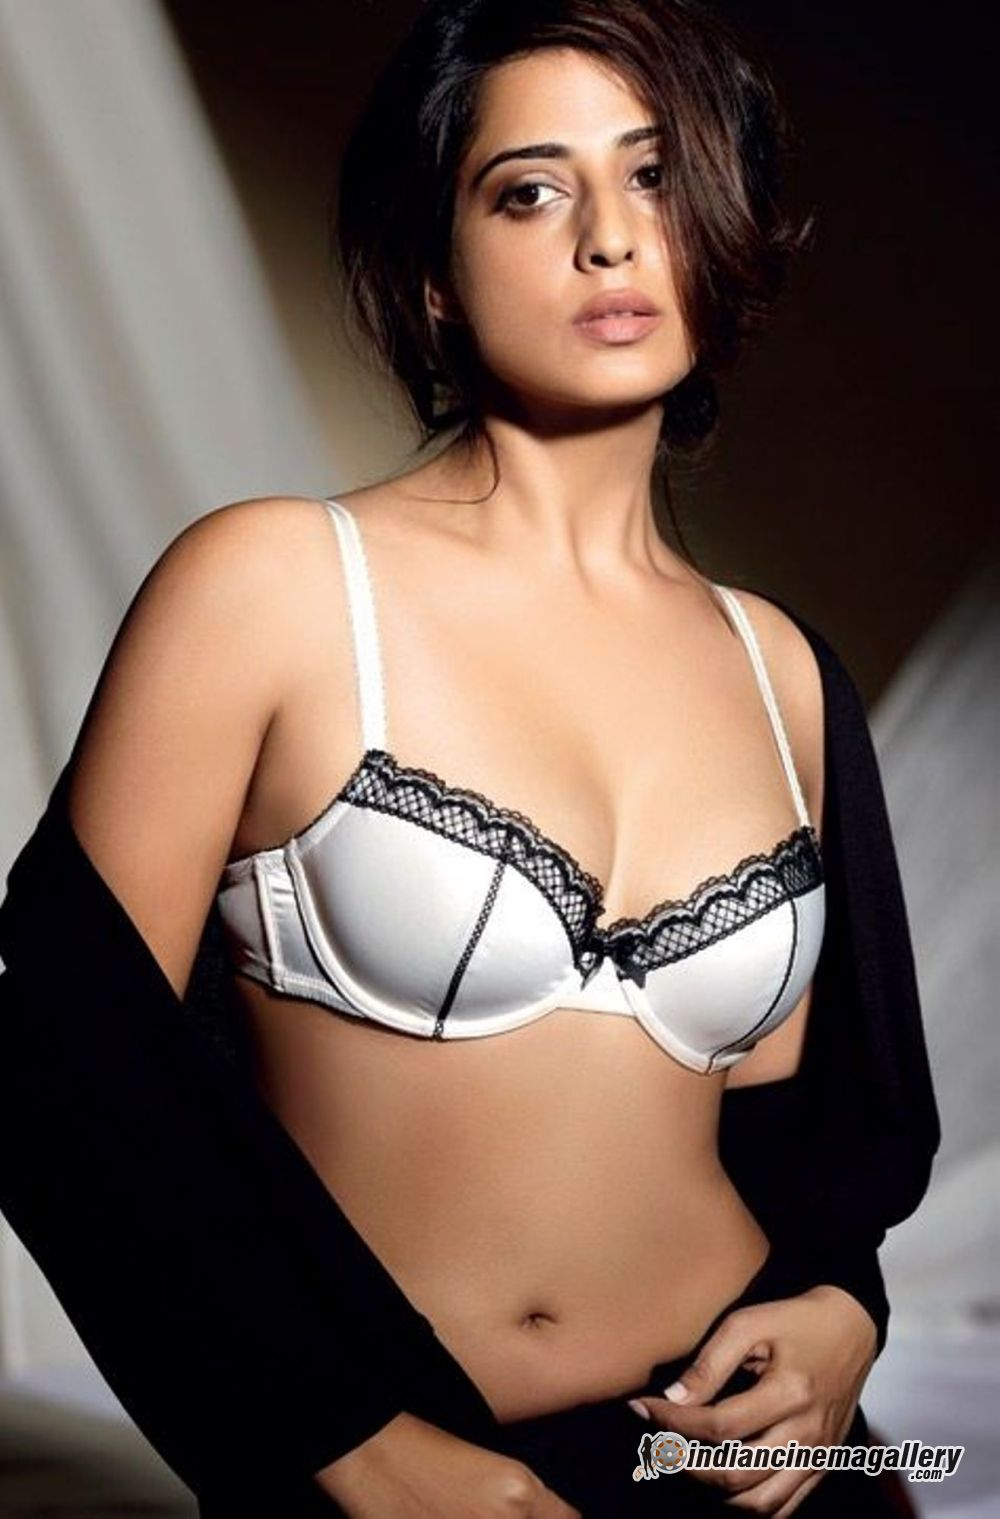 Hottest Avatar of Mahie Gill - VP (4)